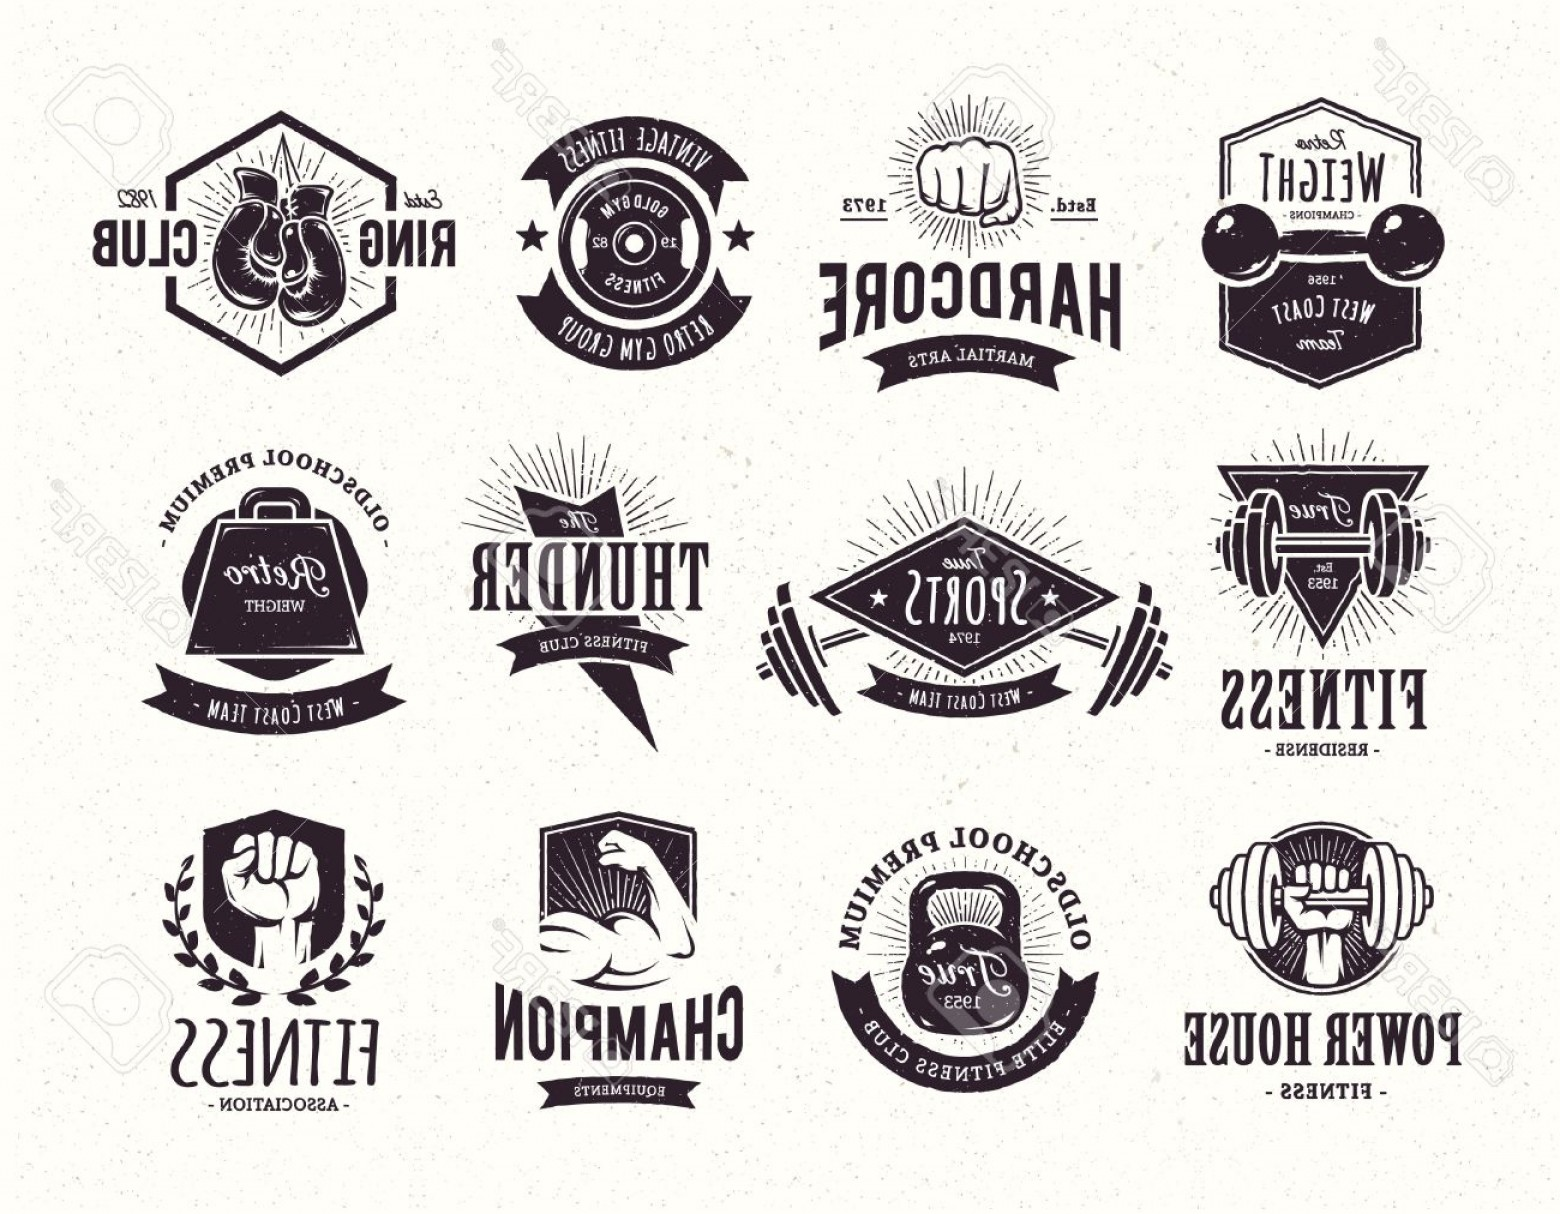 Champions Gym Vector: Photostock Vector Set Of Retro Styled Fitness Emblems Vintage Gym Logo Templates Vector Illustrations